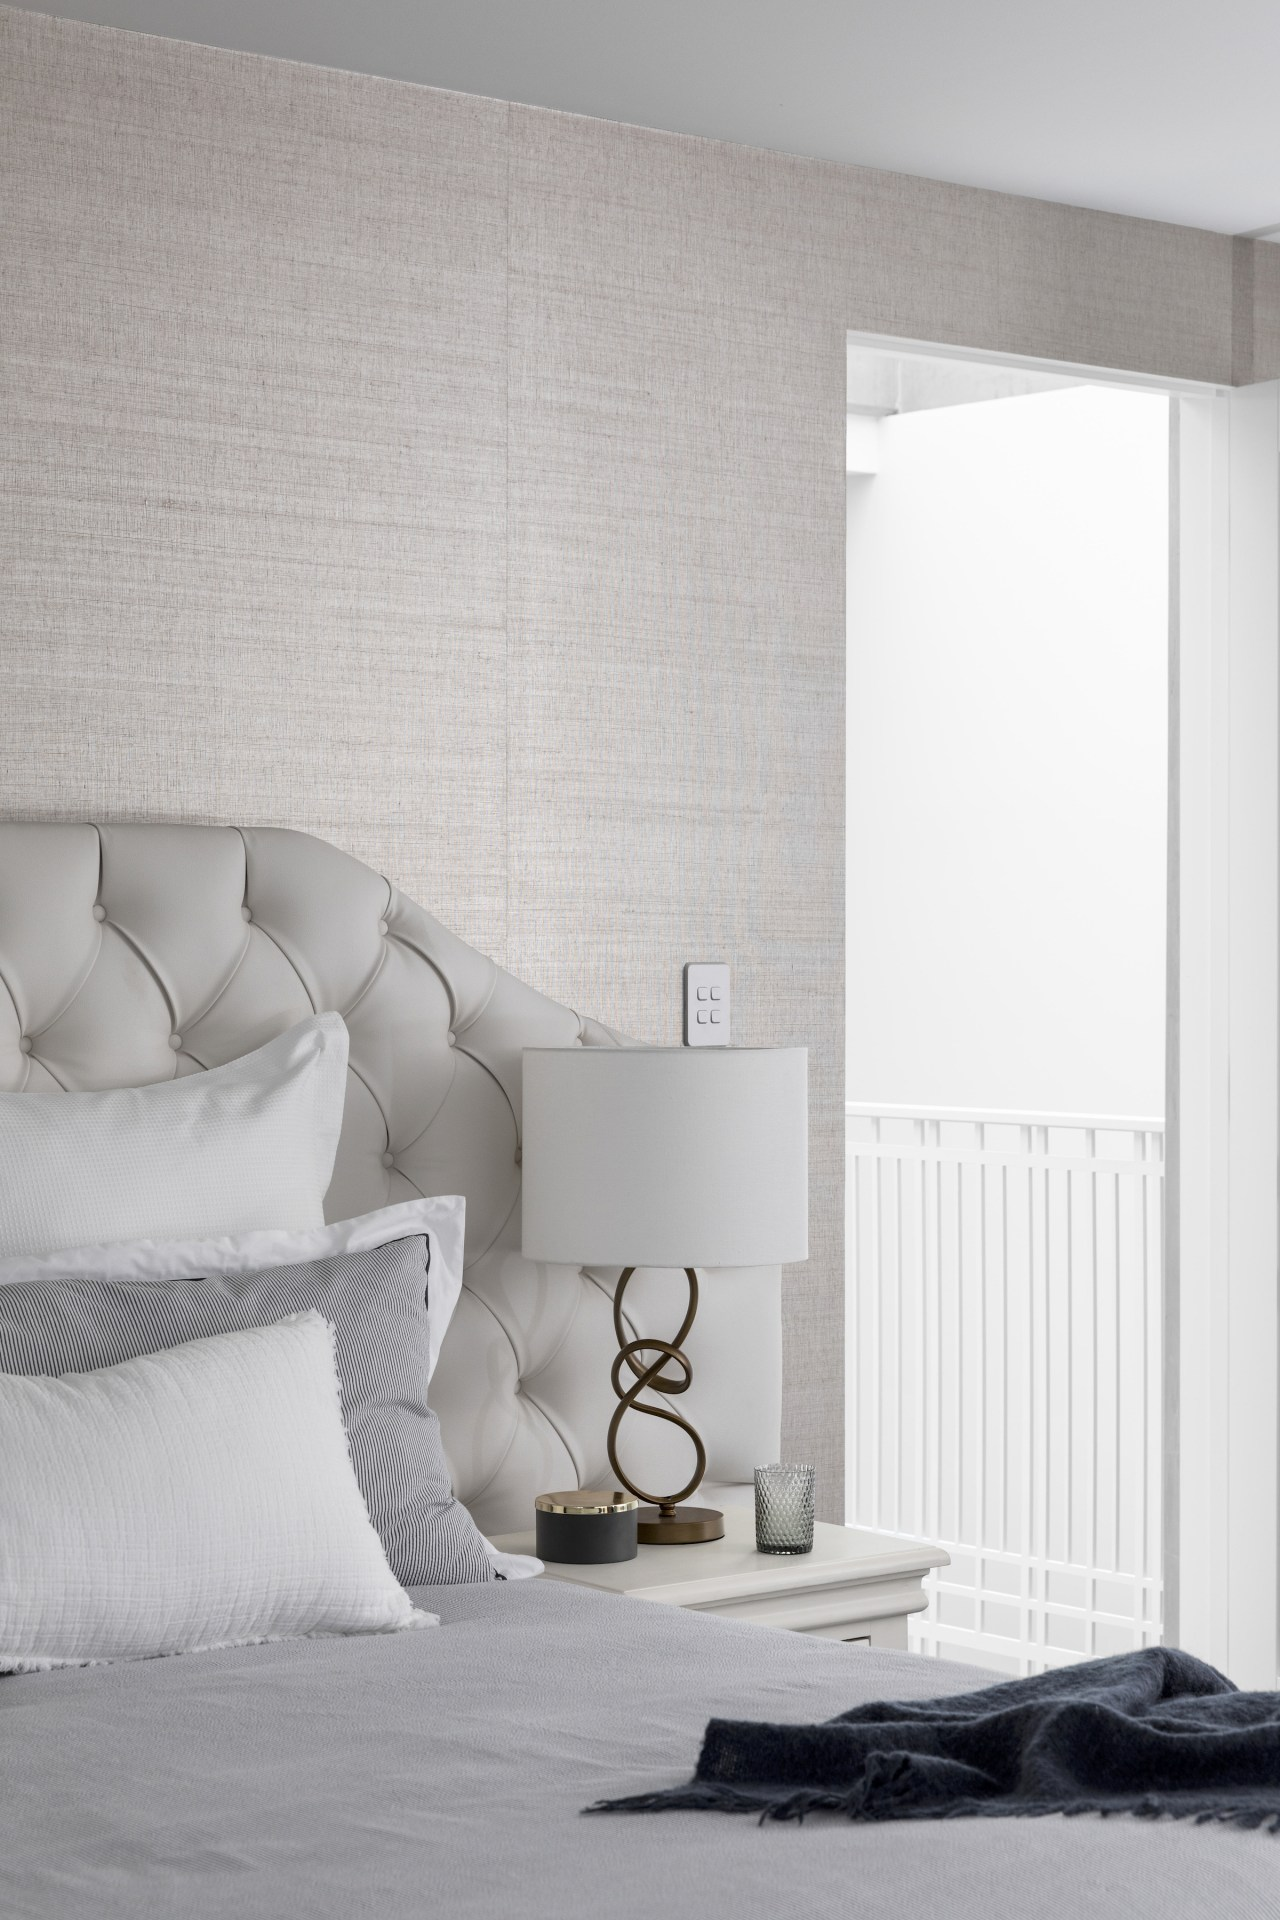 The layered and textured bedroom features a grass-cloth